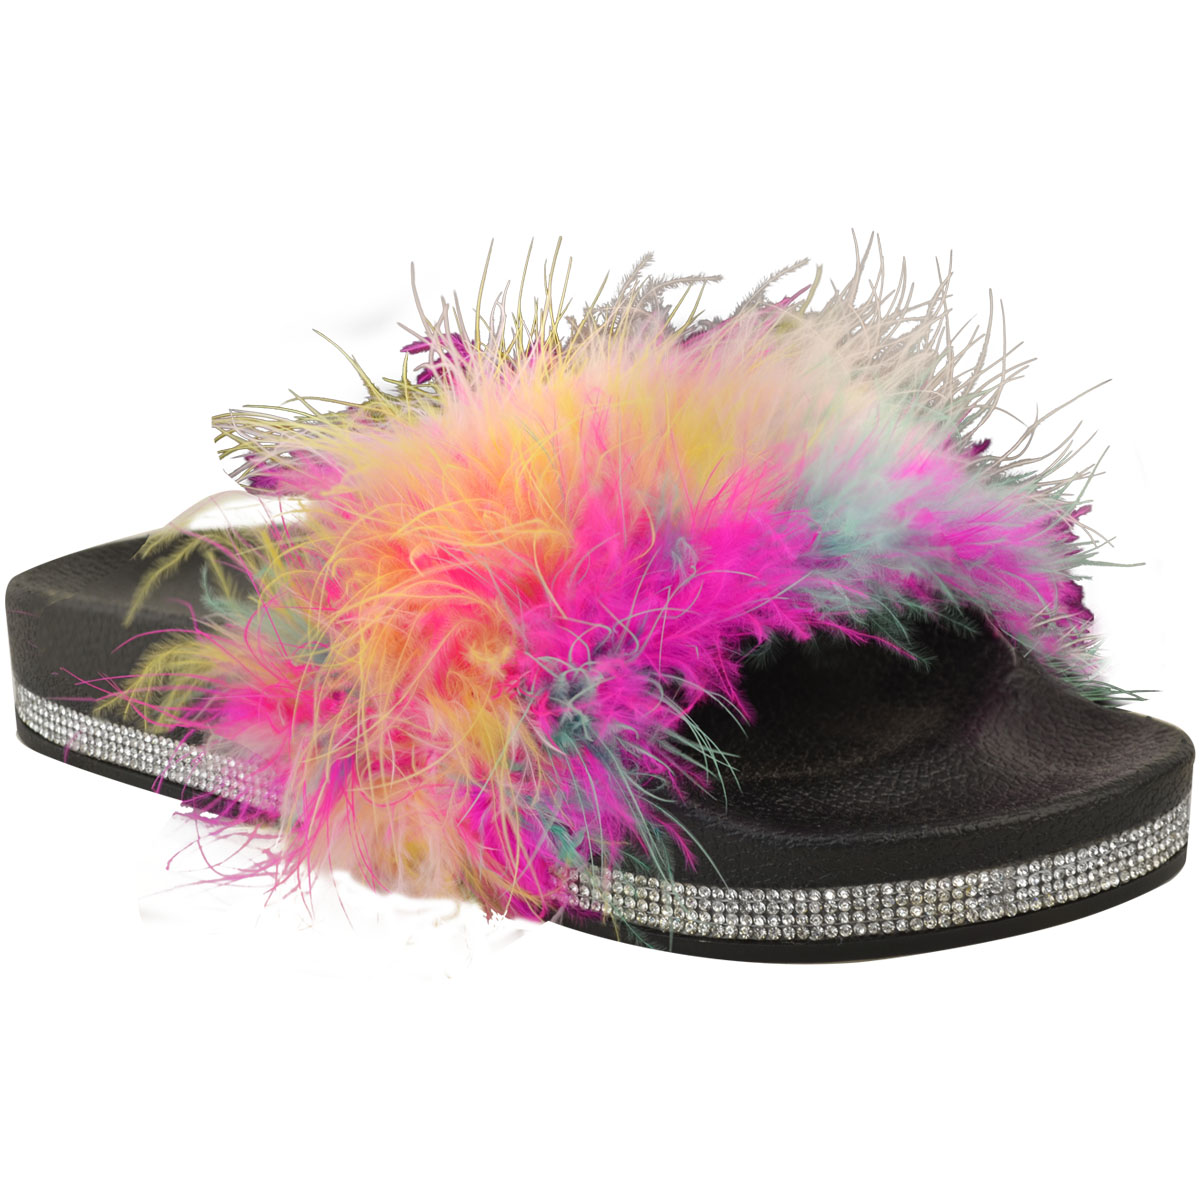 WOMENS MULTI COLOUR FEATHER SLIDERS SLIP ON MULES SANDALS SHOES LADIES SIZE 3-8